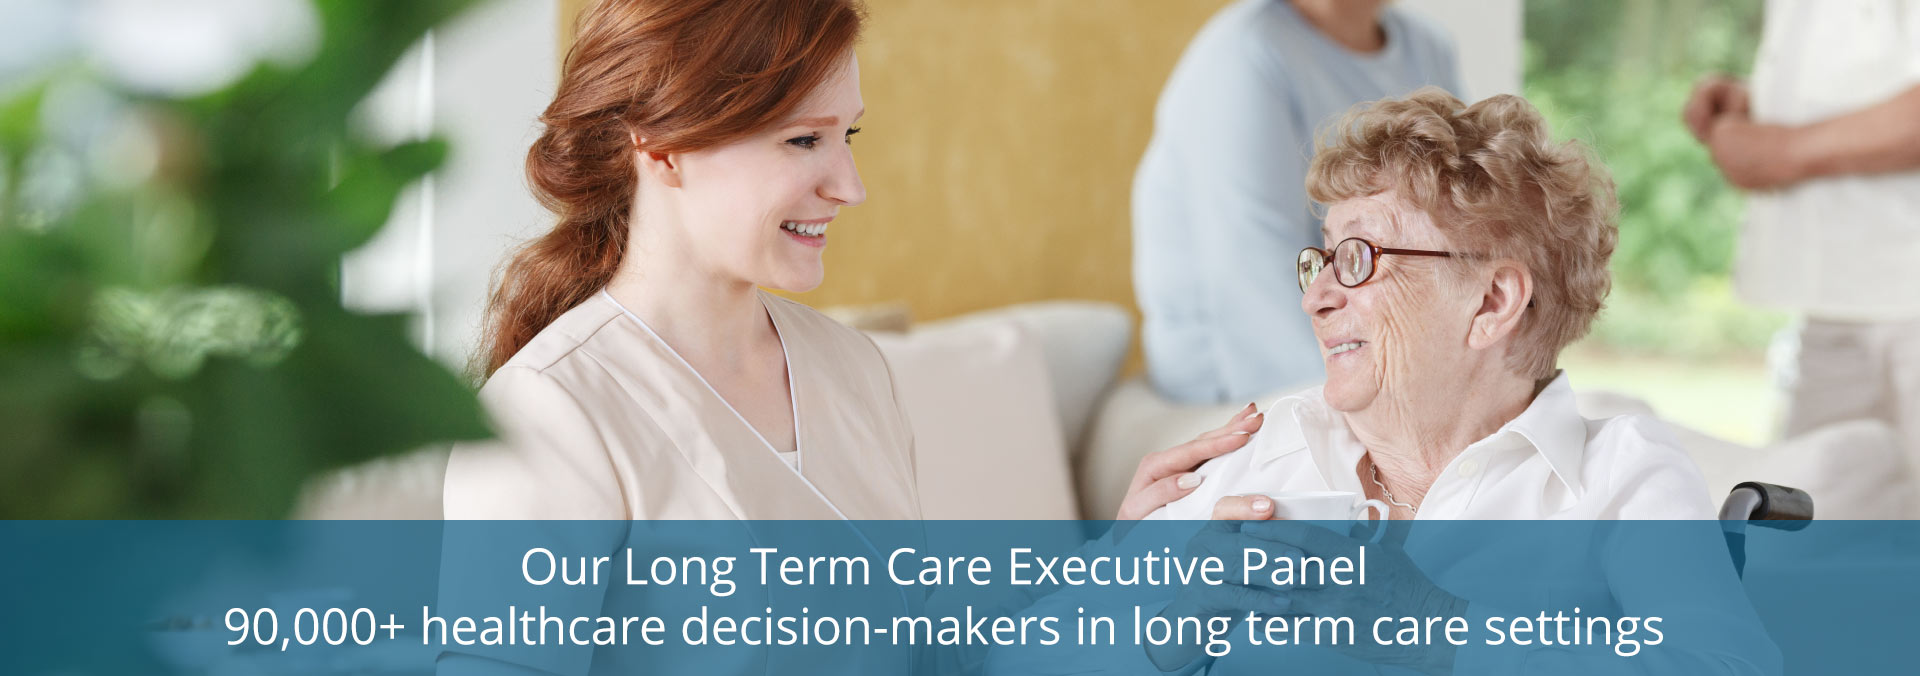 Long Term Care Executive Panel Surveys